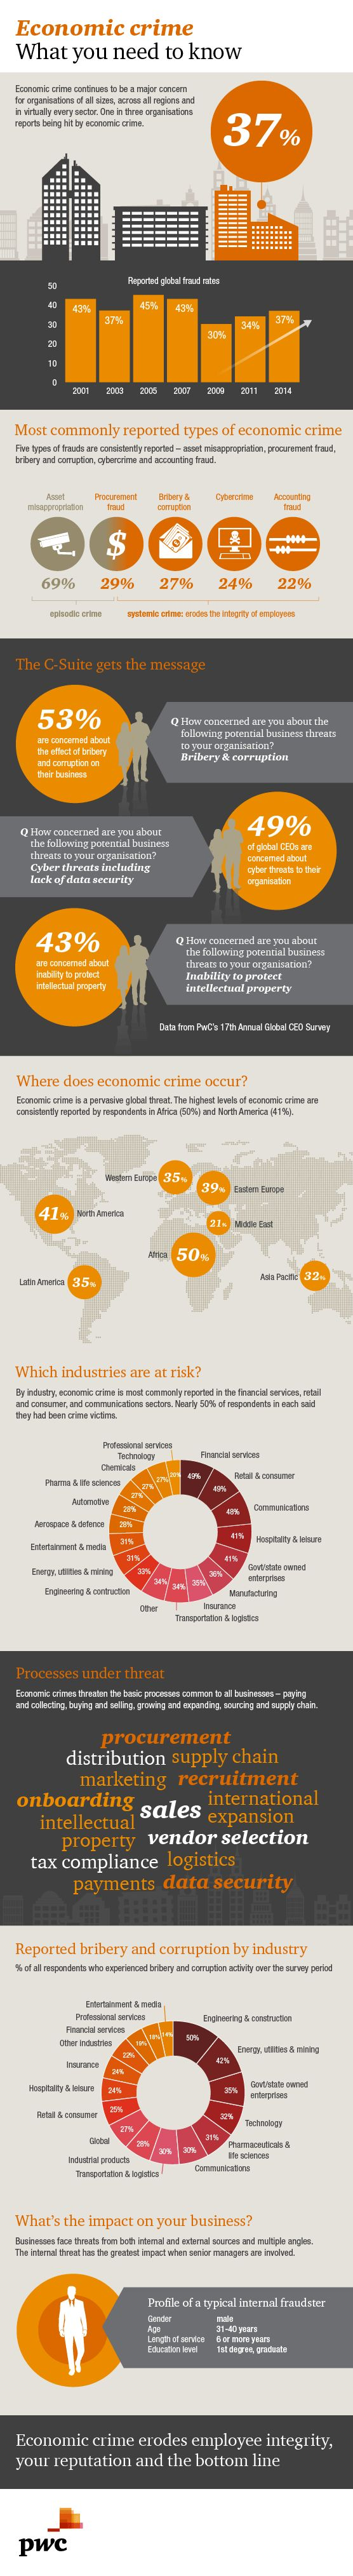 Global economic crime survey 2014: Infographic: PwC